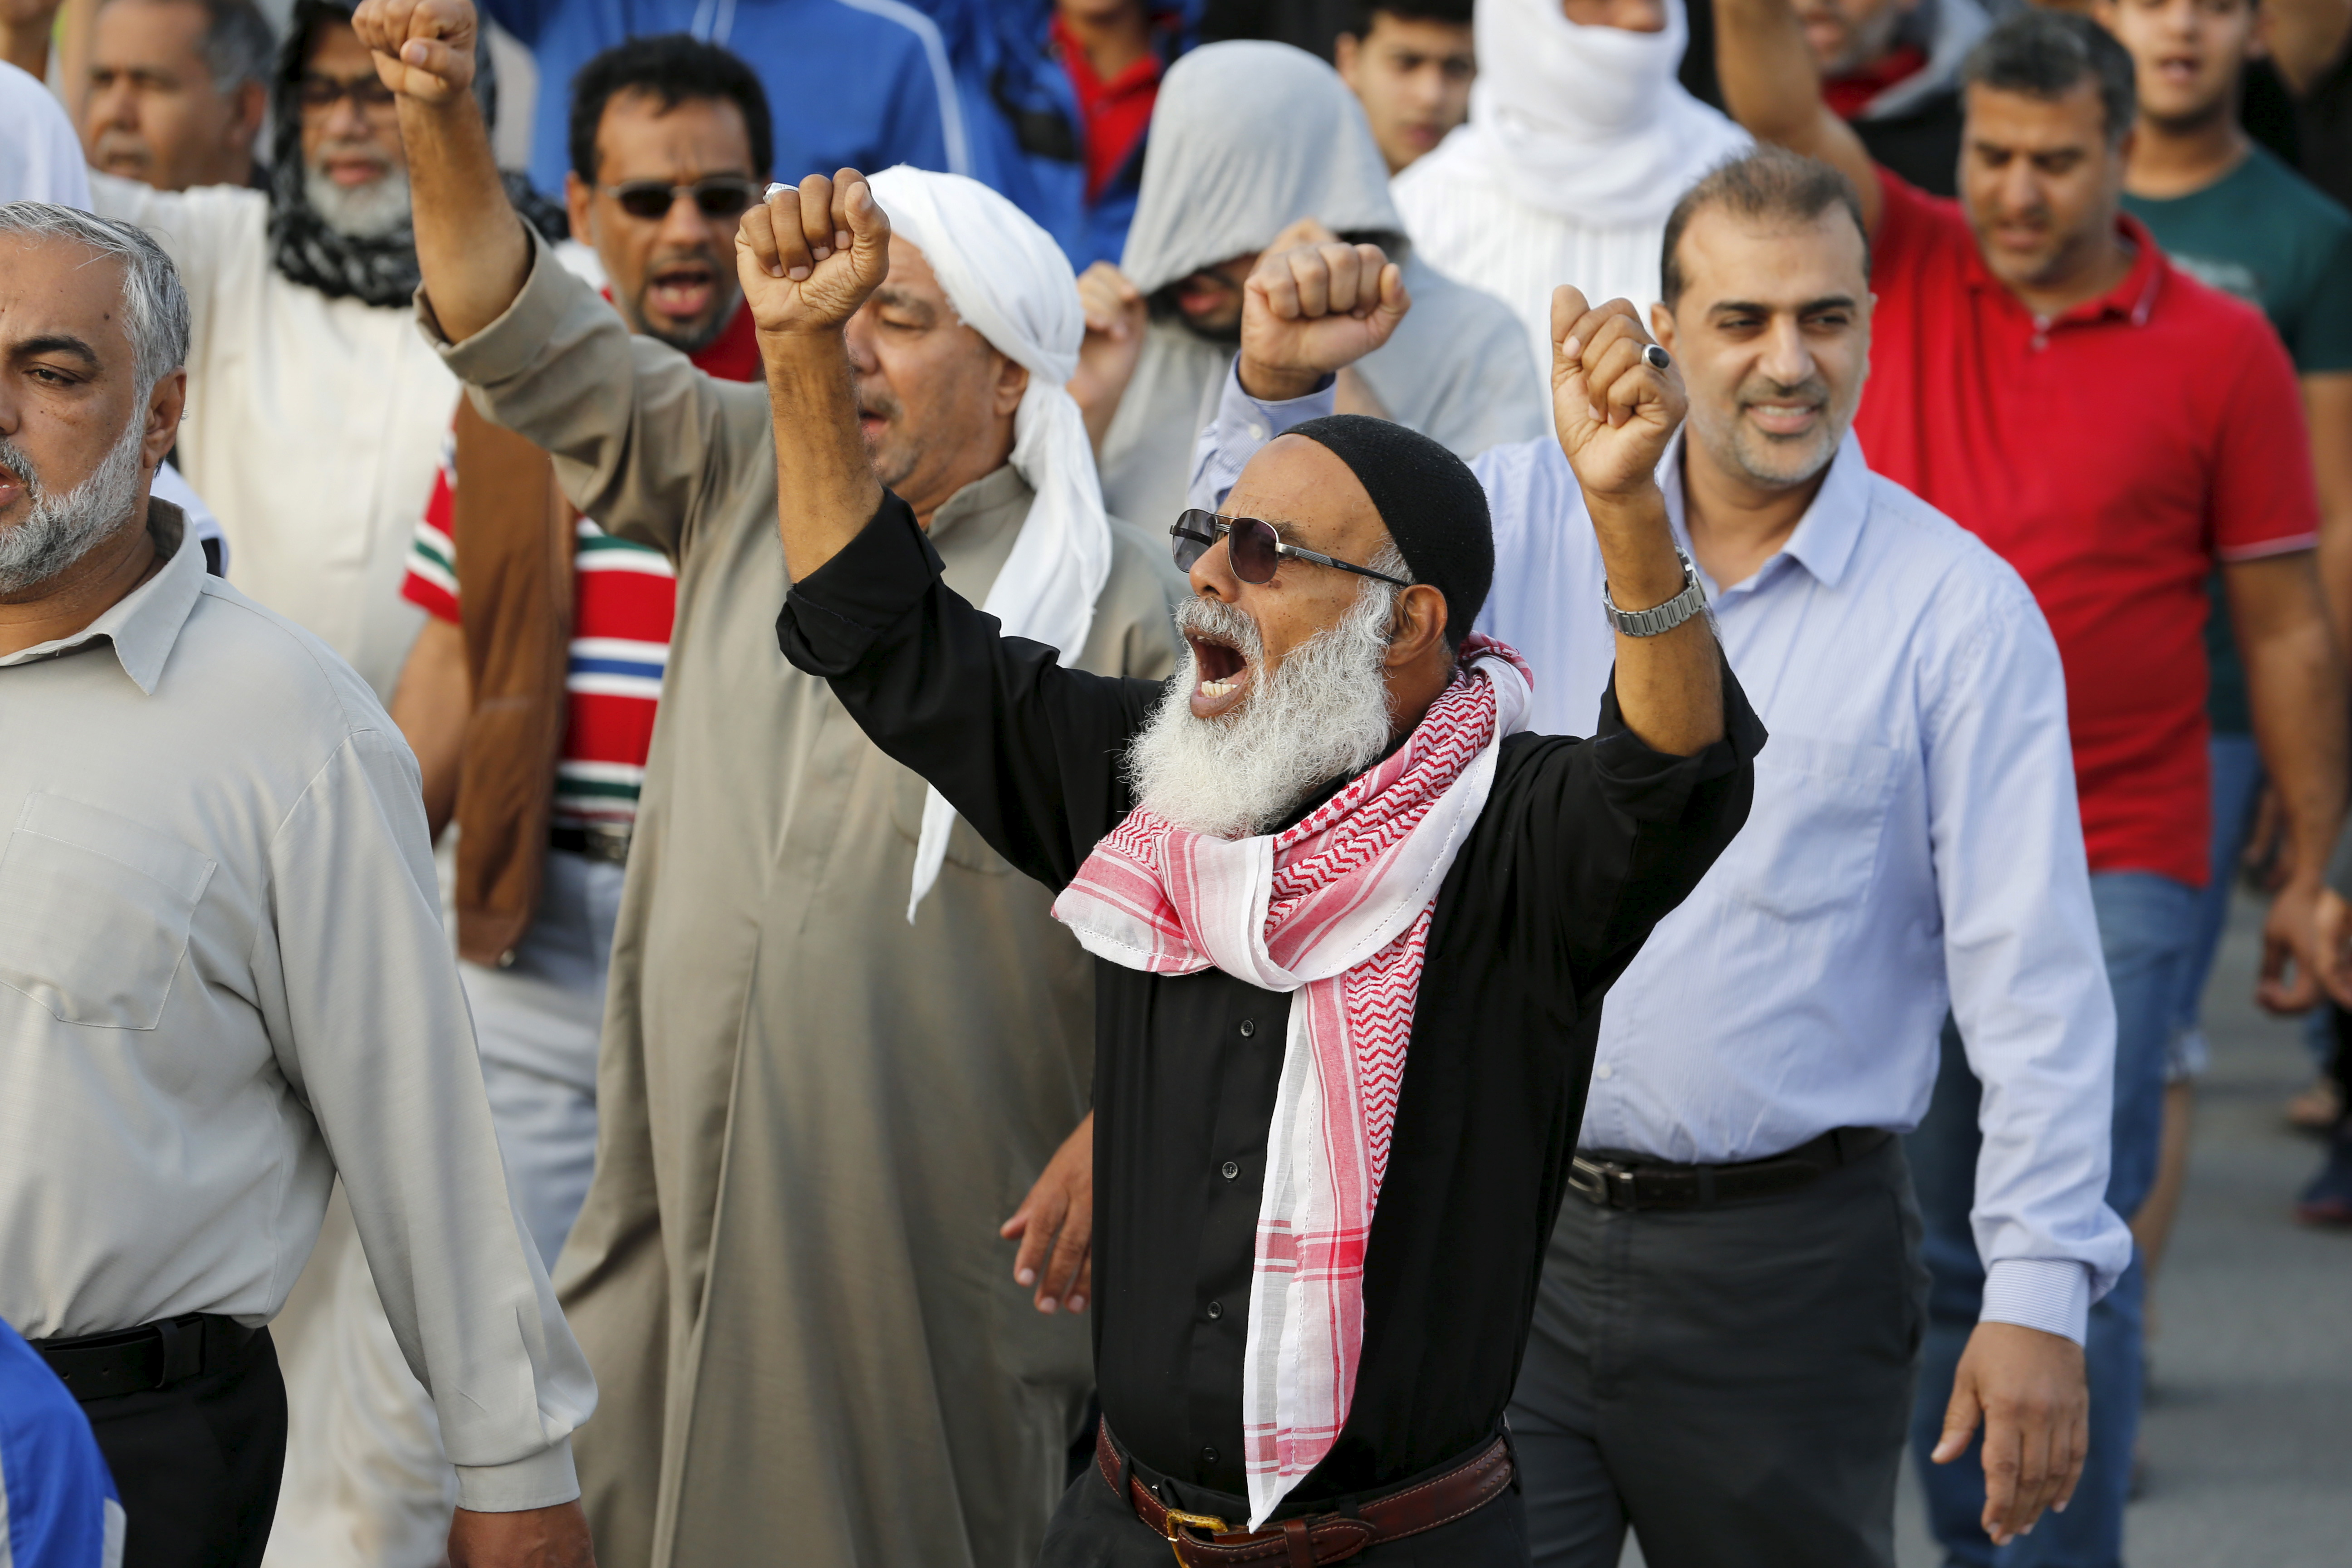 A man shouts anti-Saudi slogans as he takes part in a protest against the execution of Saudi Shi'ite cleric Nimr al-Nimr by Saudi authorities, in the village of Sanabis, west of Manama, Bahrain, Jan. 2, 2016.